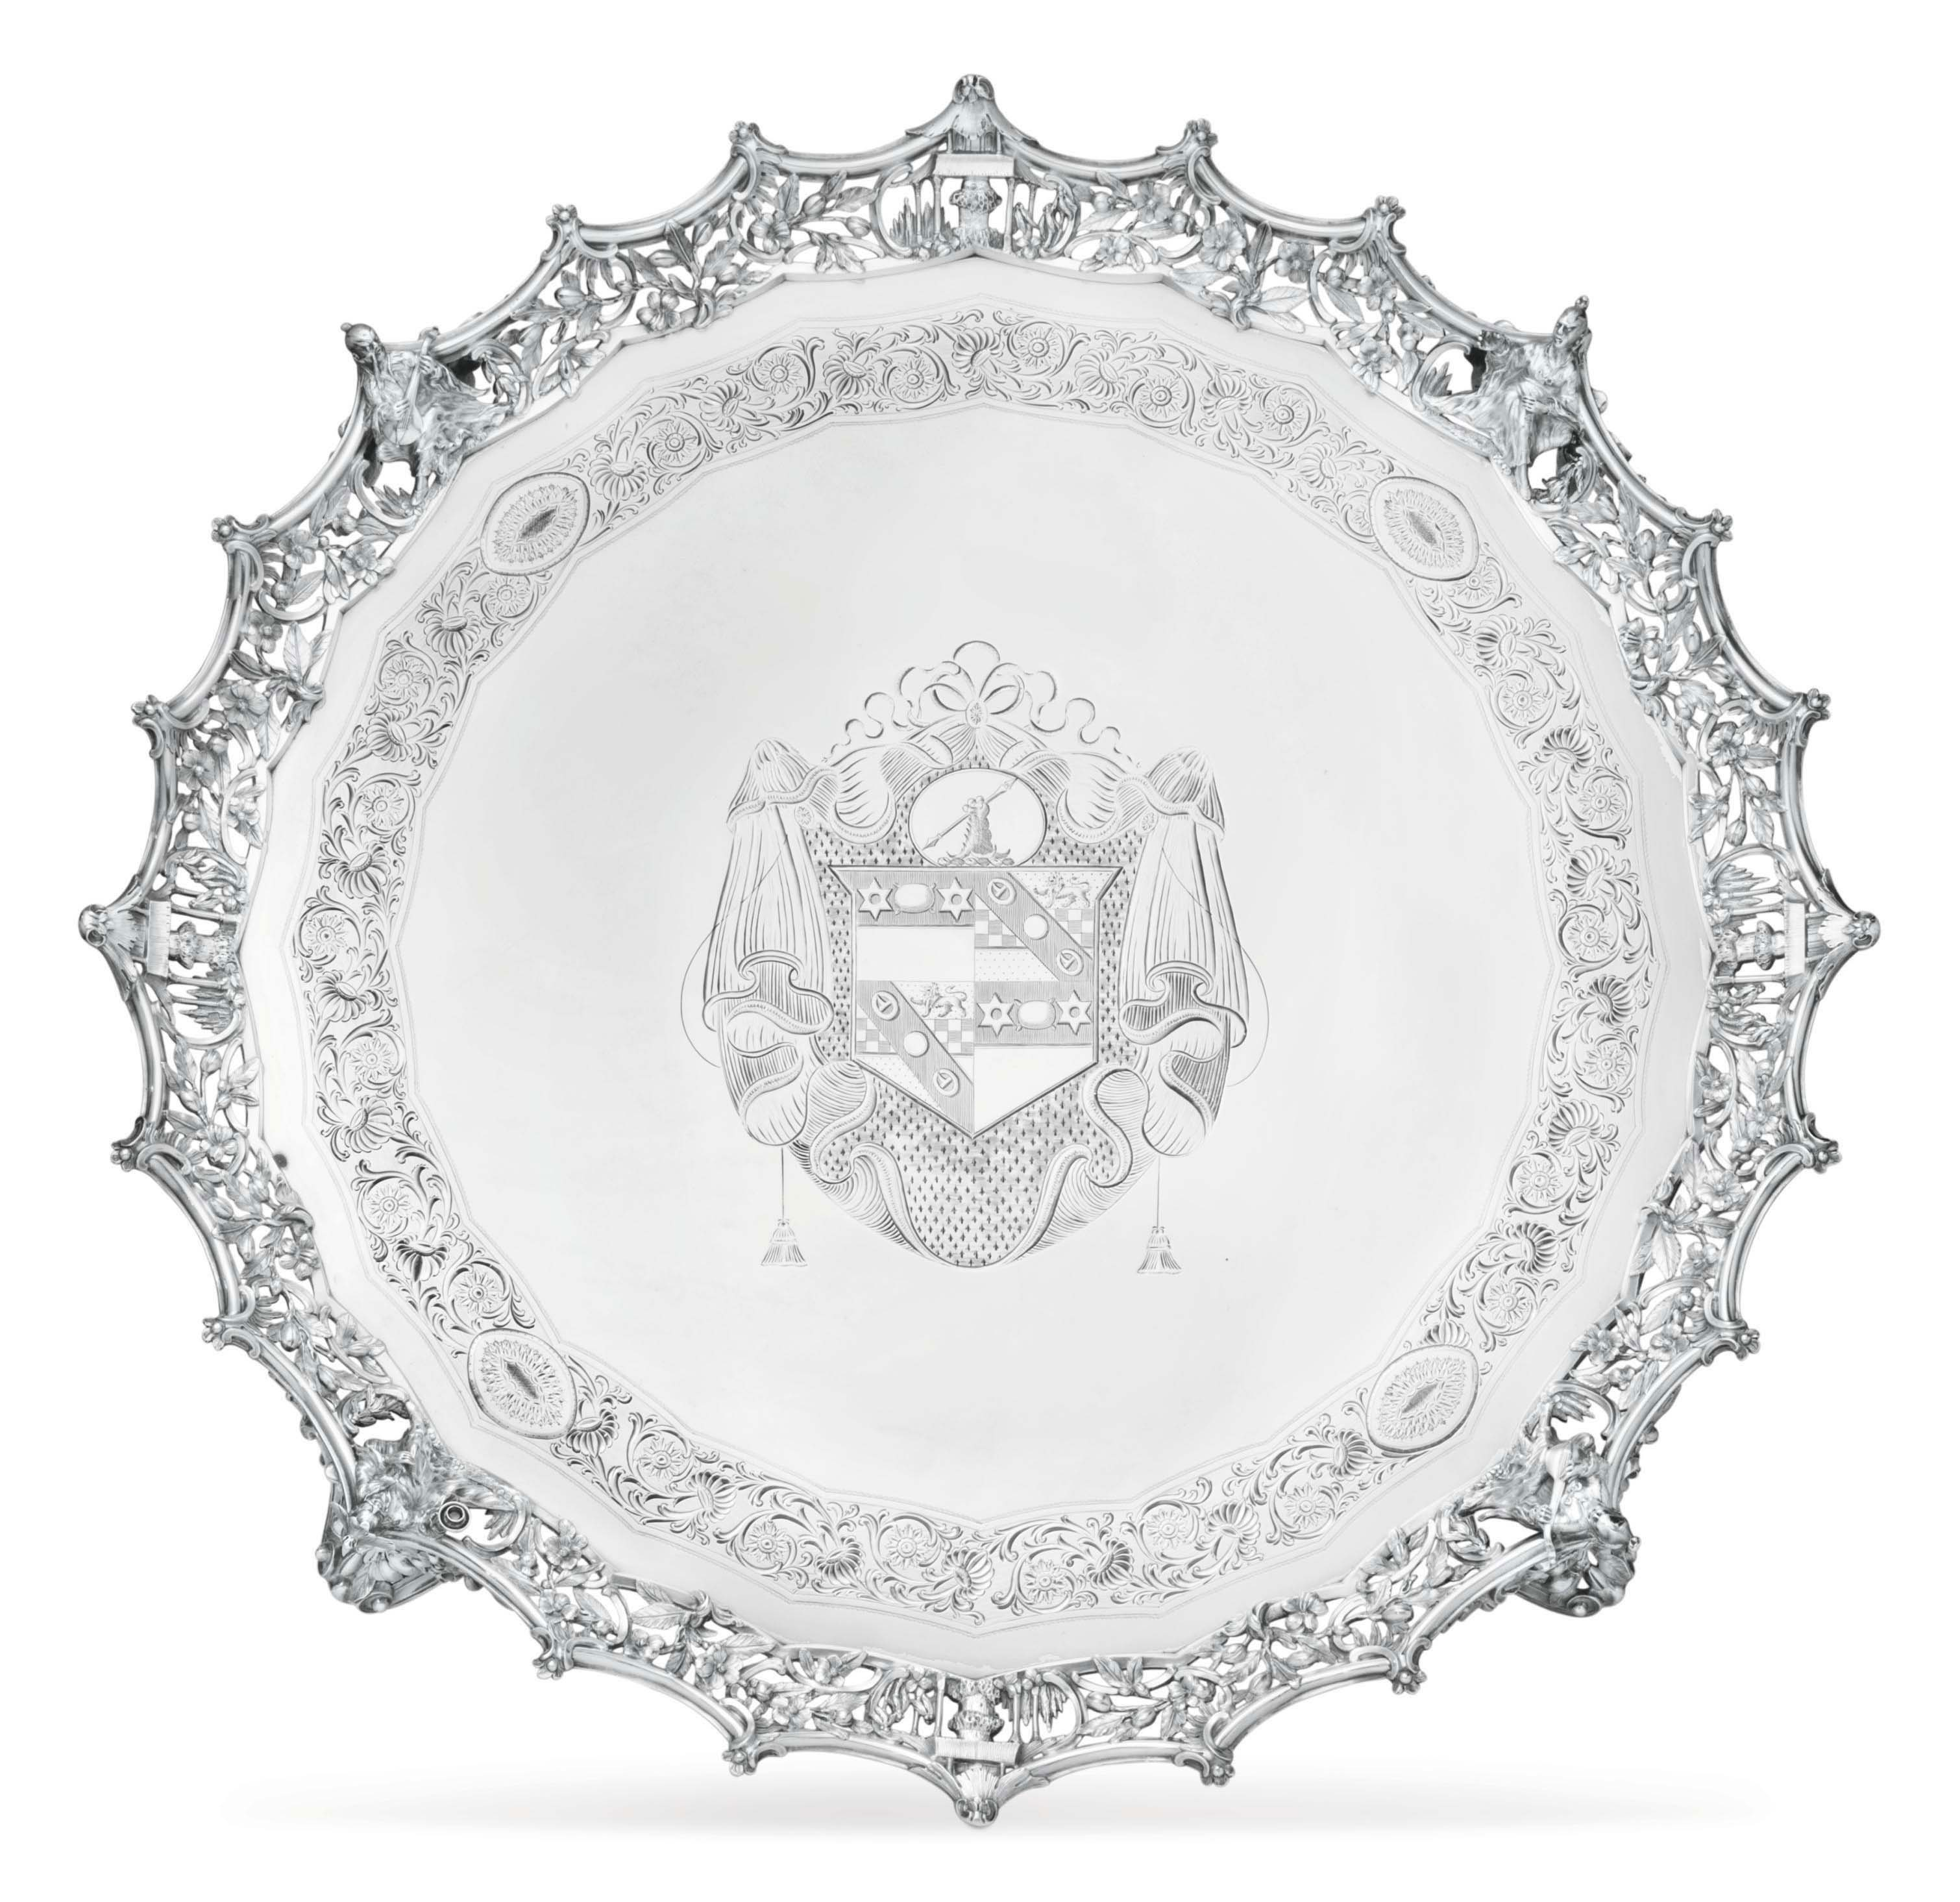 A LARGE GEORGE III SILVER SALVER